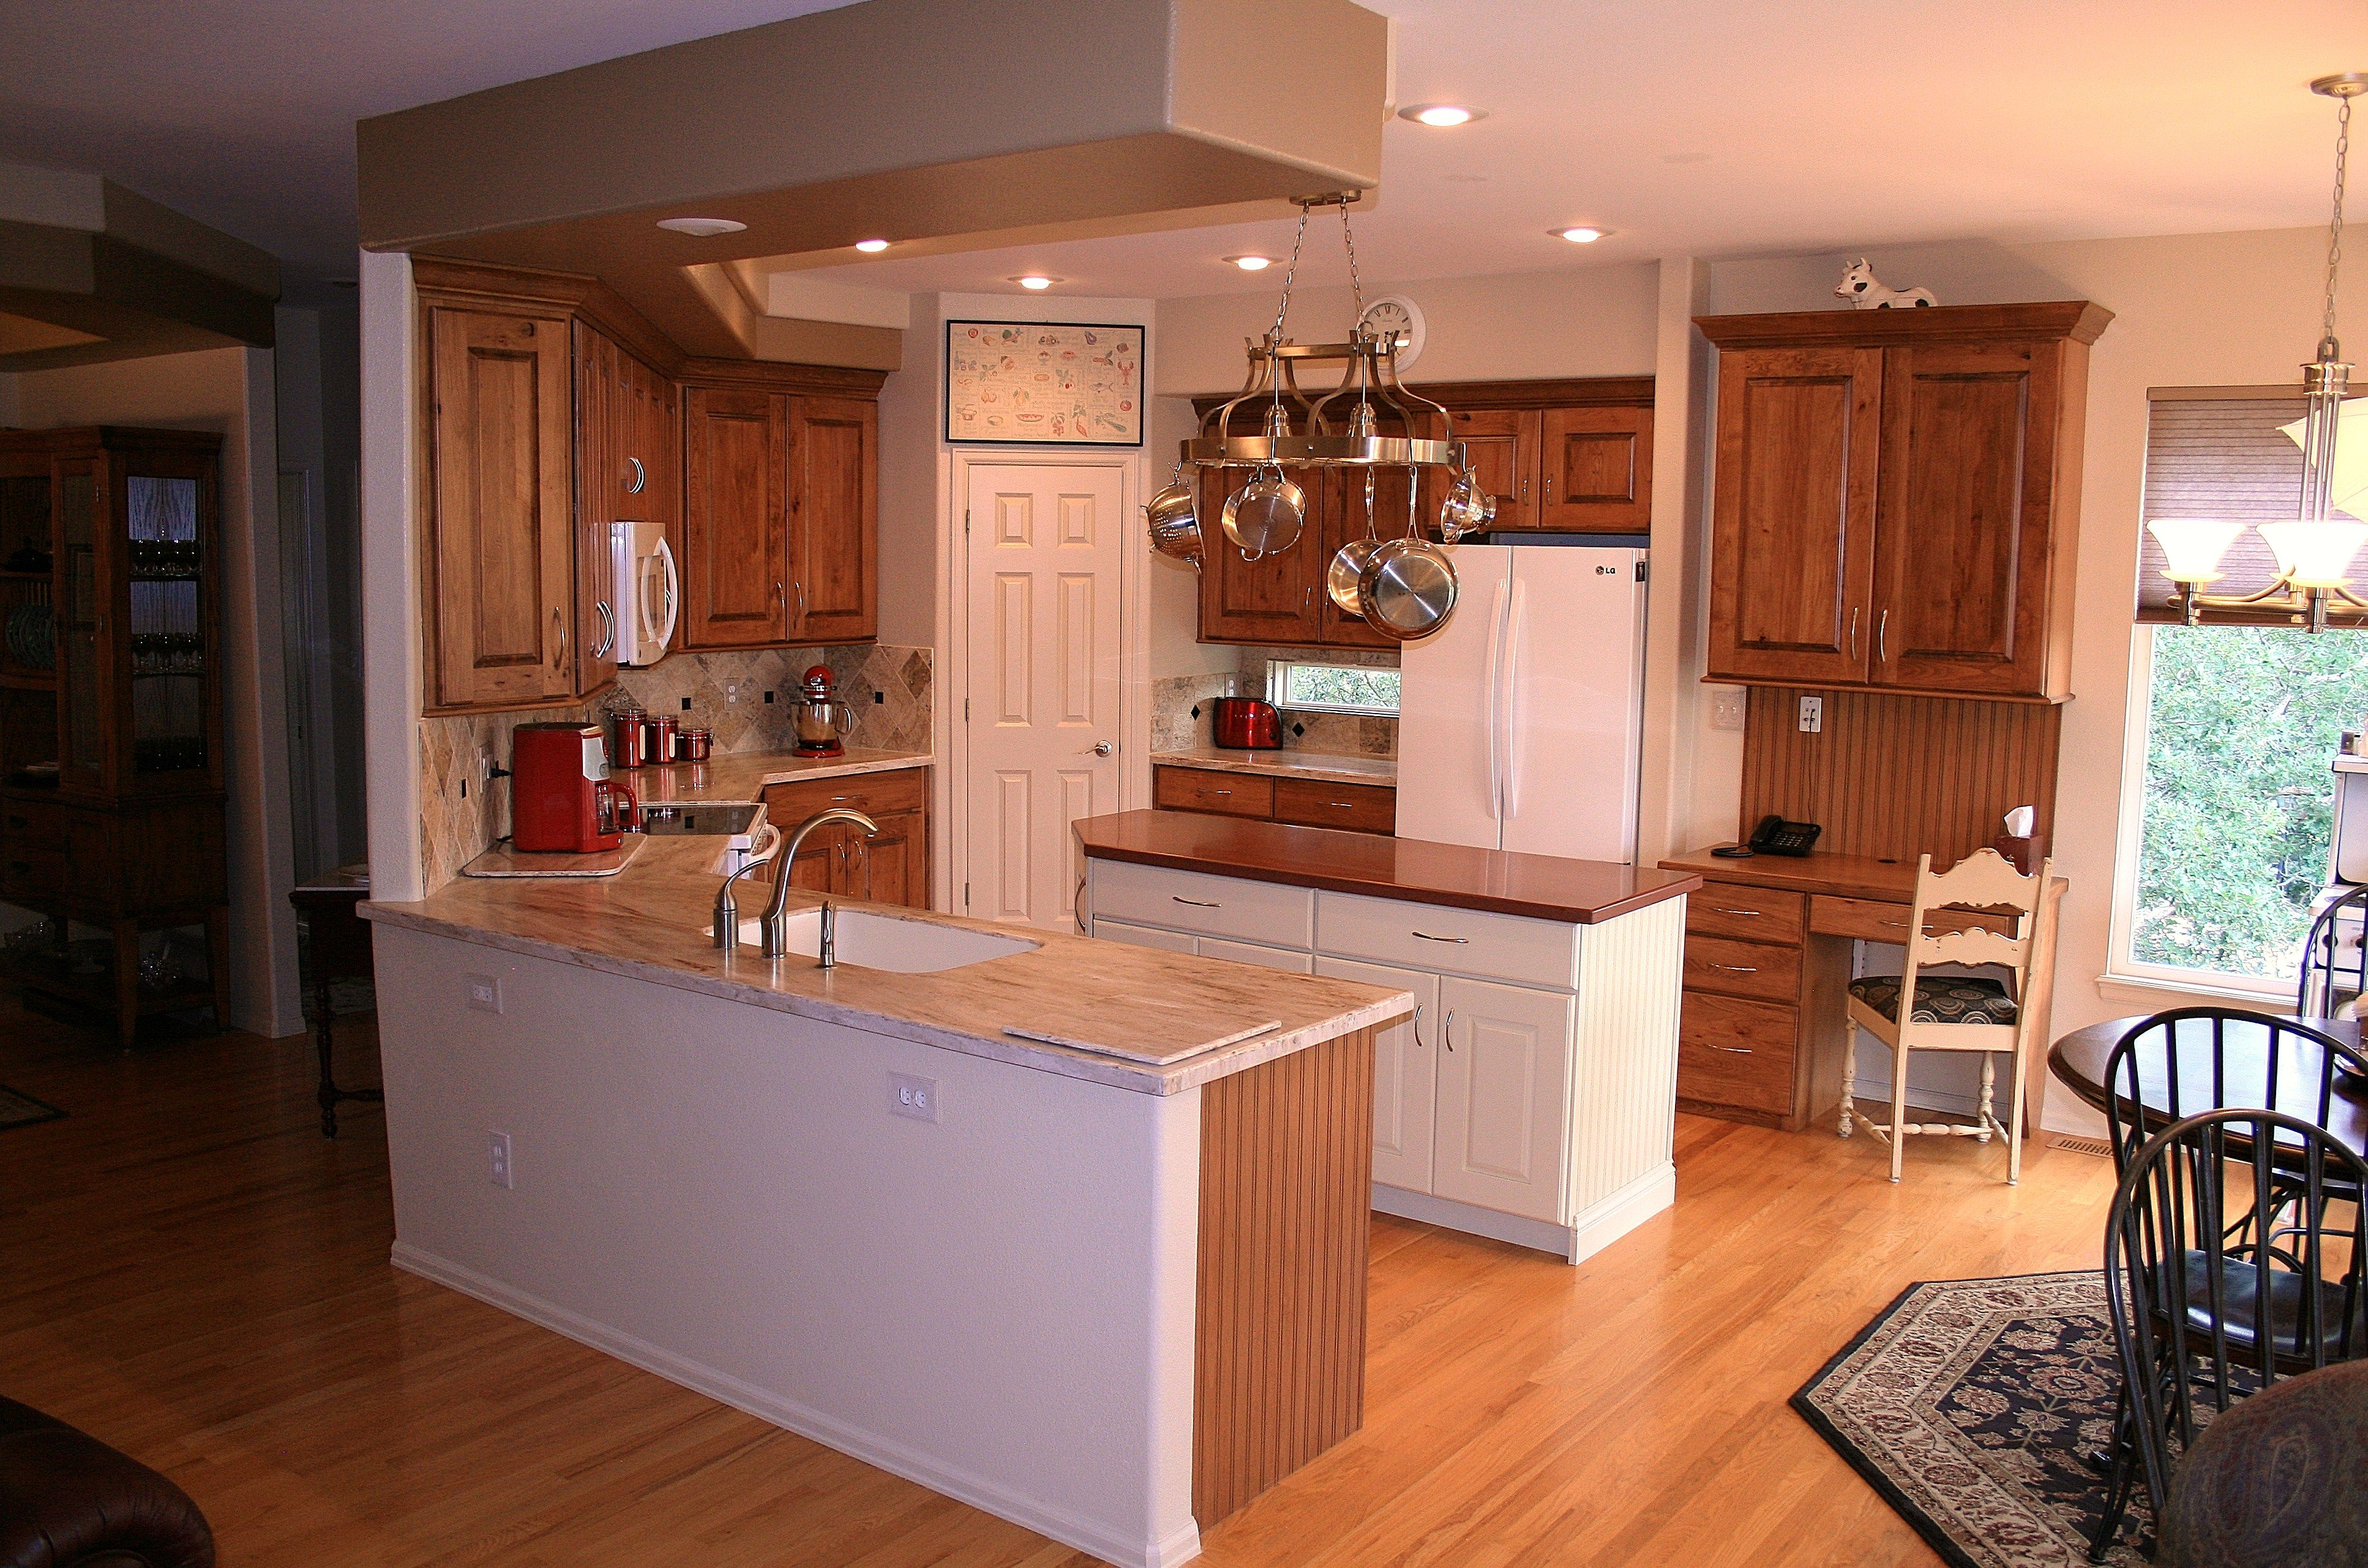 U shaped kitchen with island in middle company projects for U shaped kitchen